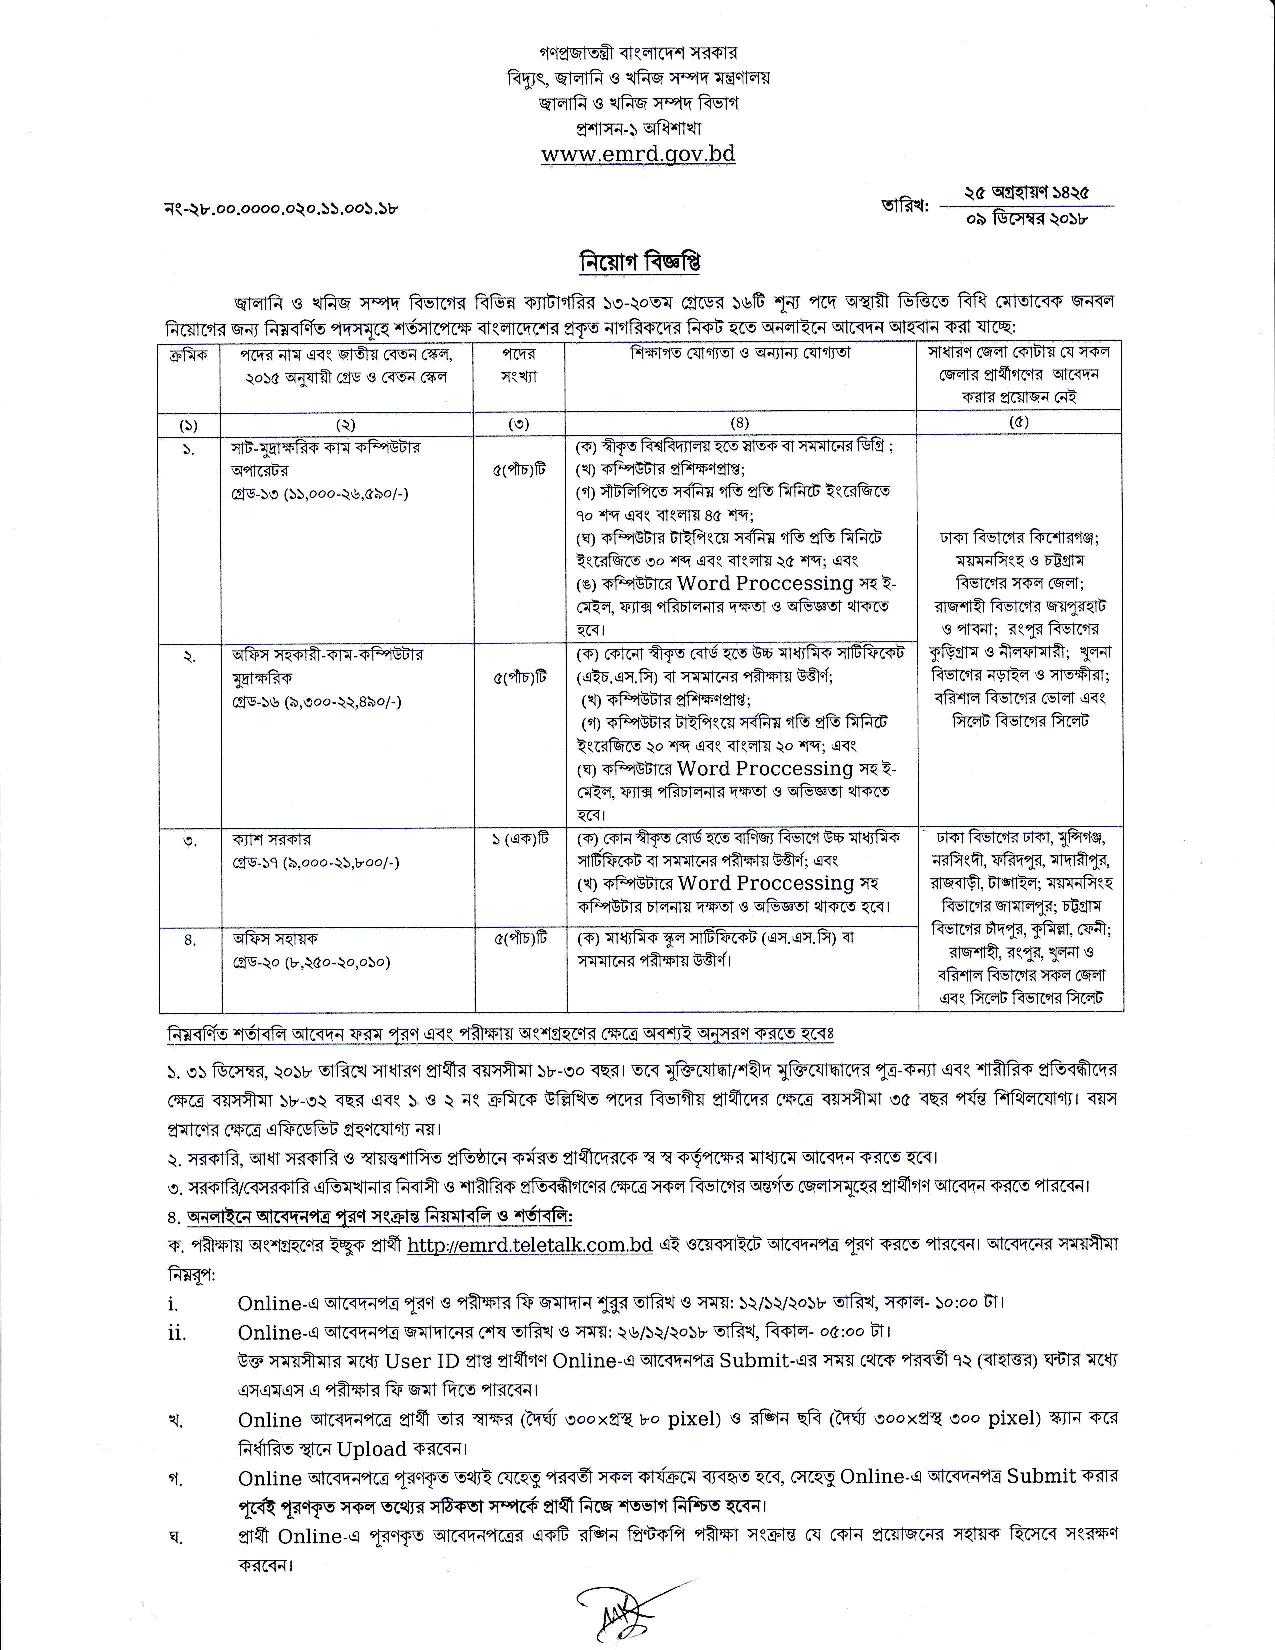 Energy And Mineral Resources Division Exam Result Date Admit 2019 2